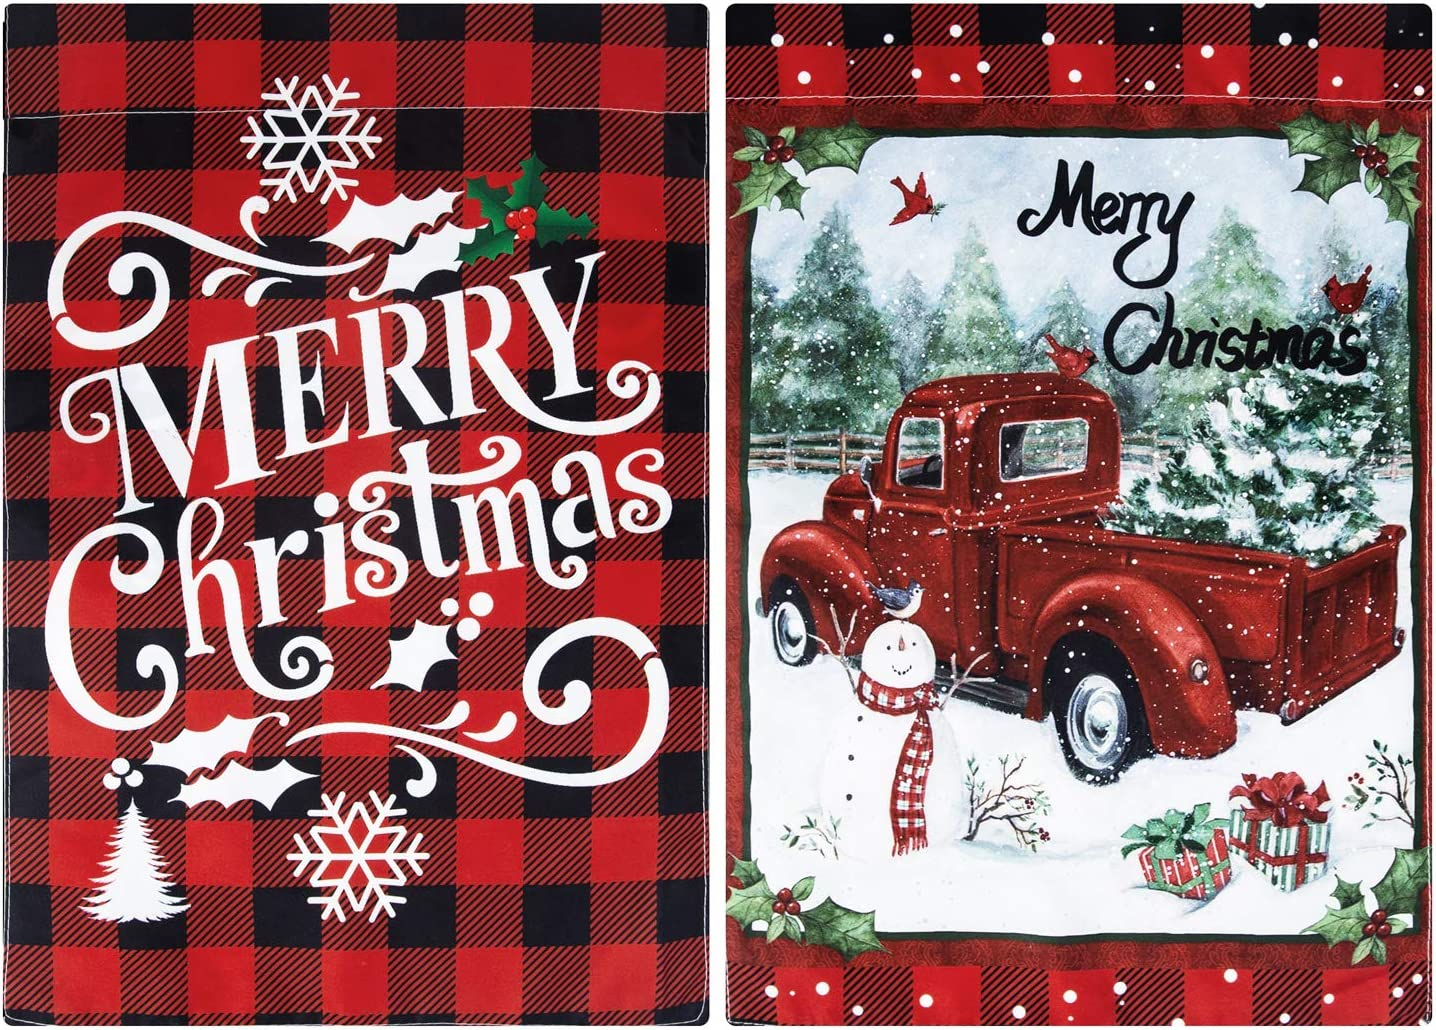 Unves 2 Pack Decorative Merry Christmas Garden Flags 12.5 x 18 Double Sided Red Truck Flag, Red Black Buffalo Merry Christmas Yard Flag, Decorative Winter Holiday House Yard Farmhouse Flags